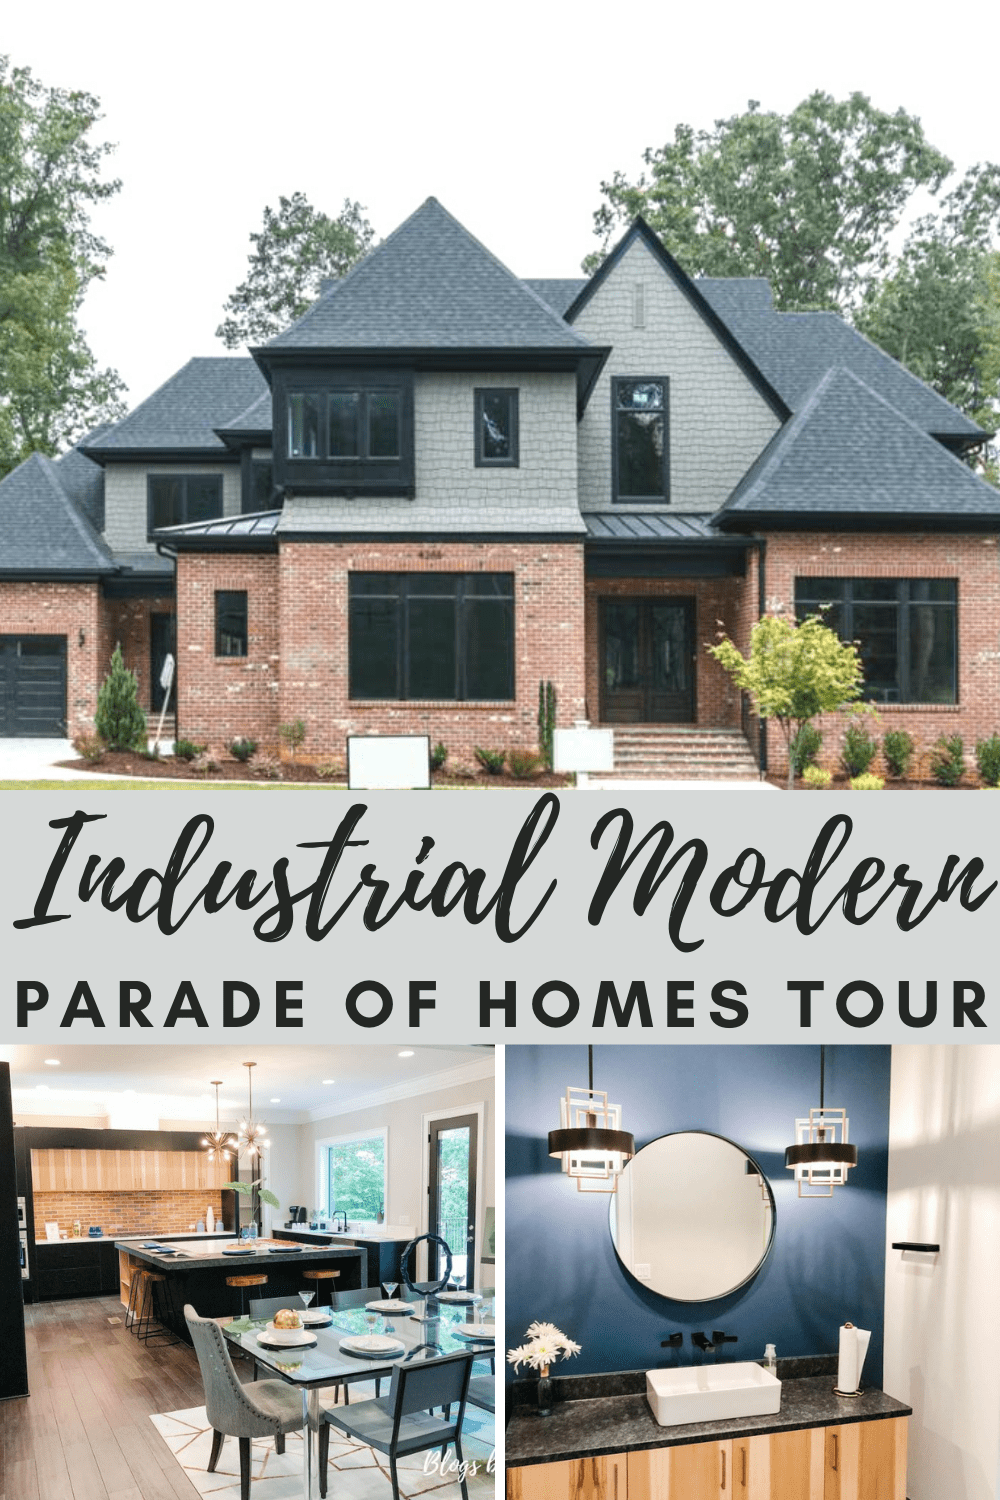 Industrial Modern Parade of Homes Tour